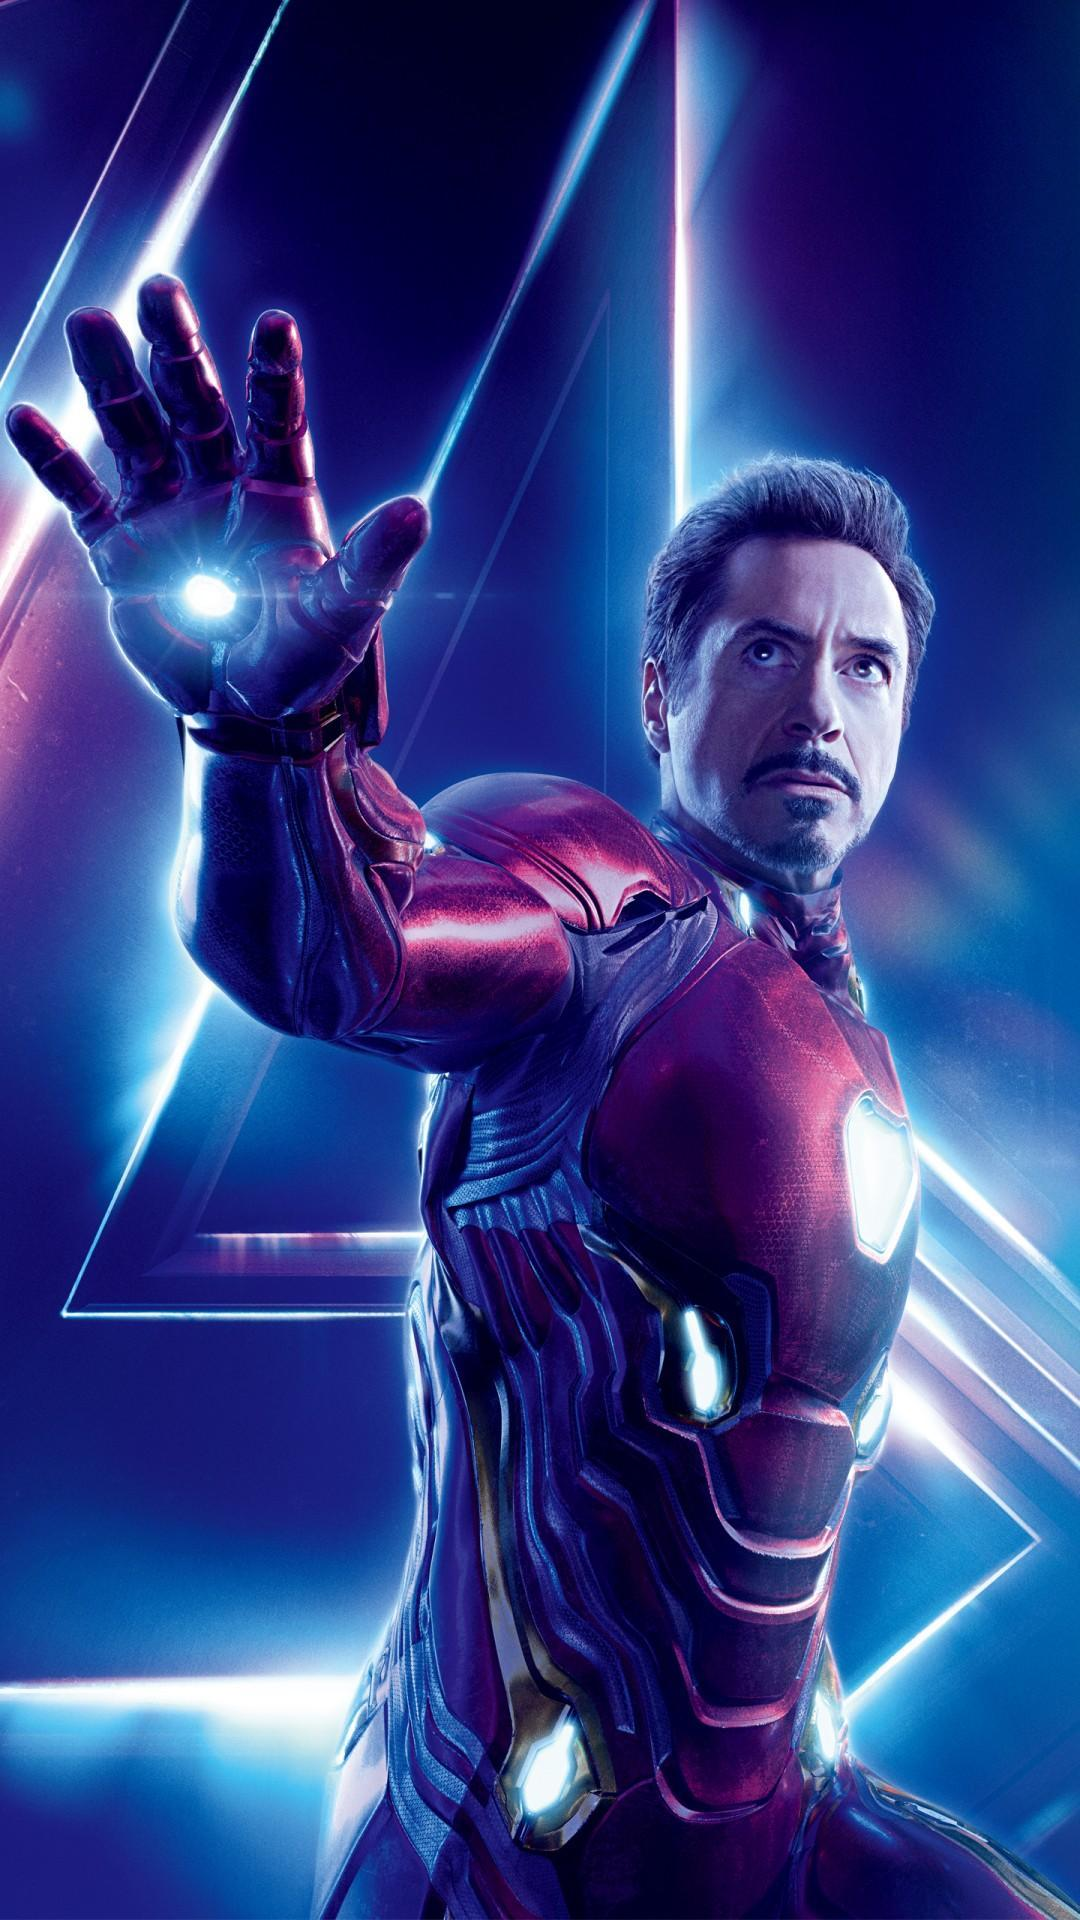 Avengers Infinity War 4K Wallpapers for Android - APK Download